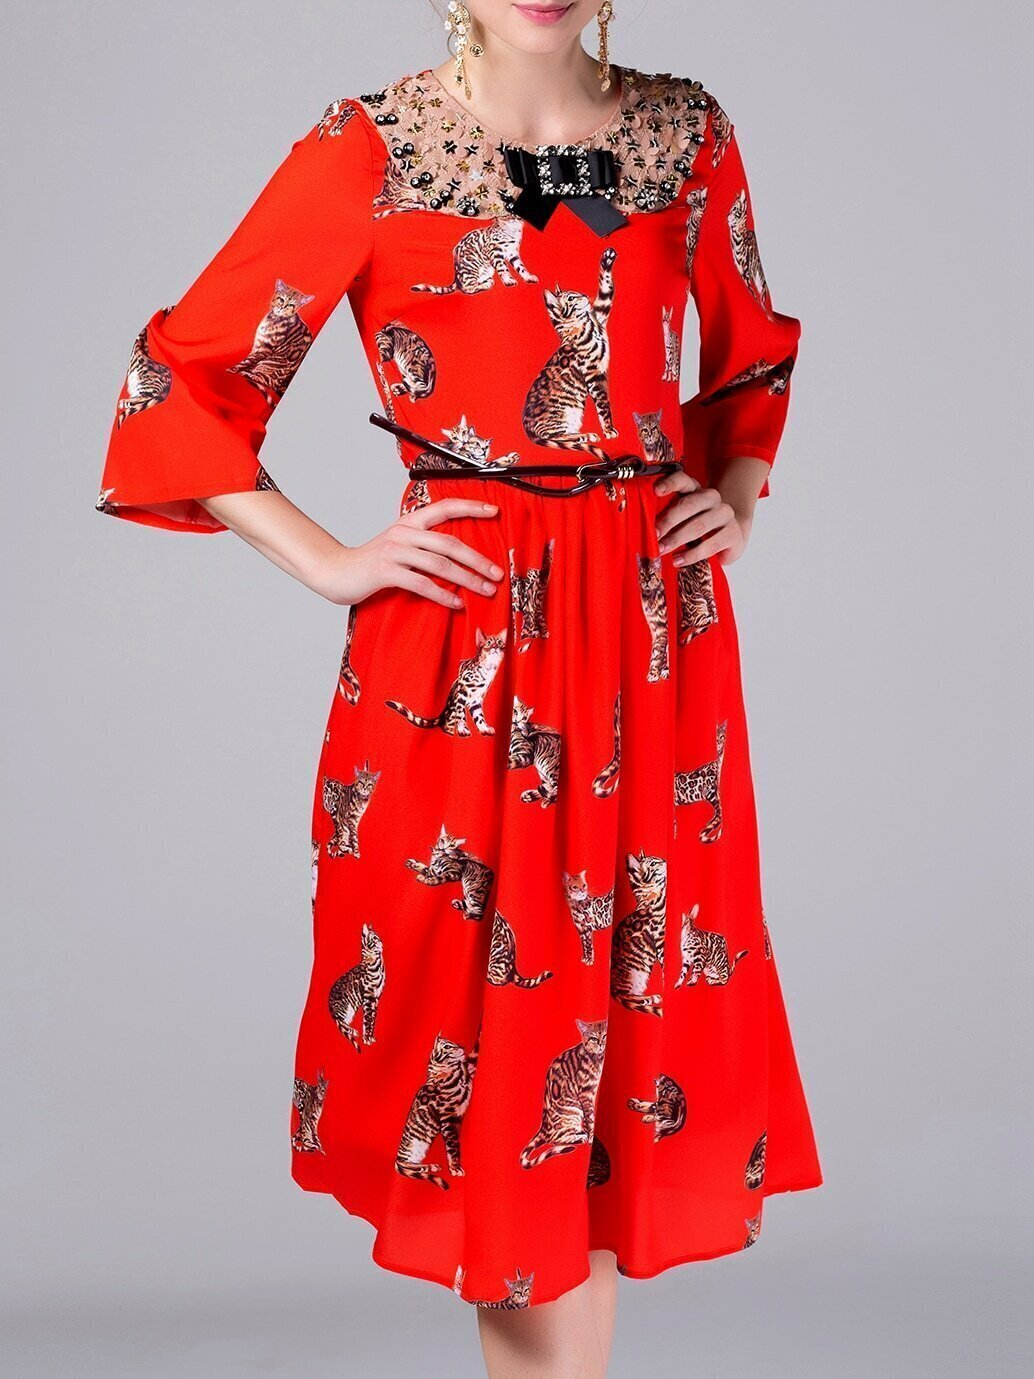 Red Bowtie Belted Cats Print Dress